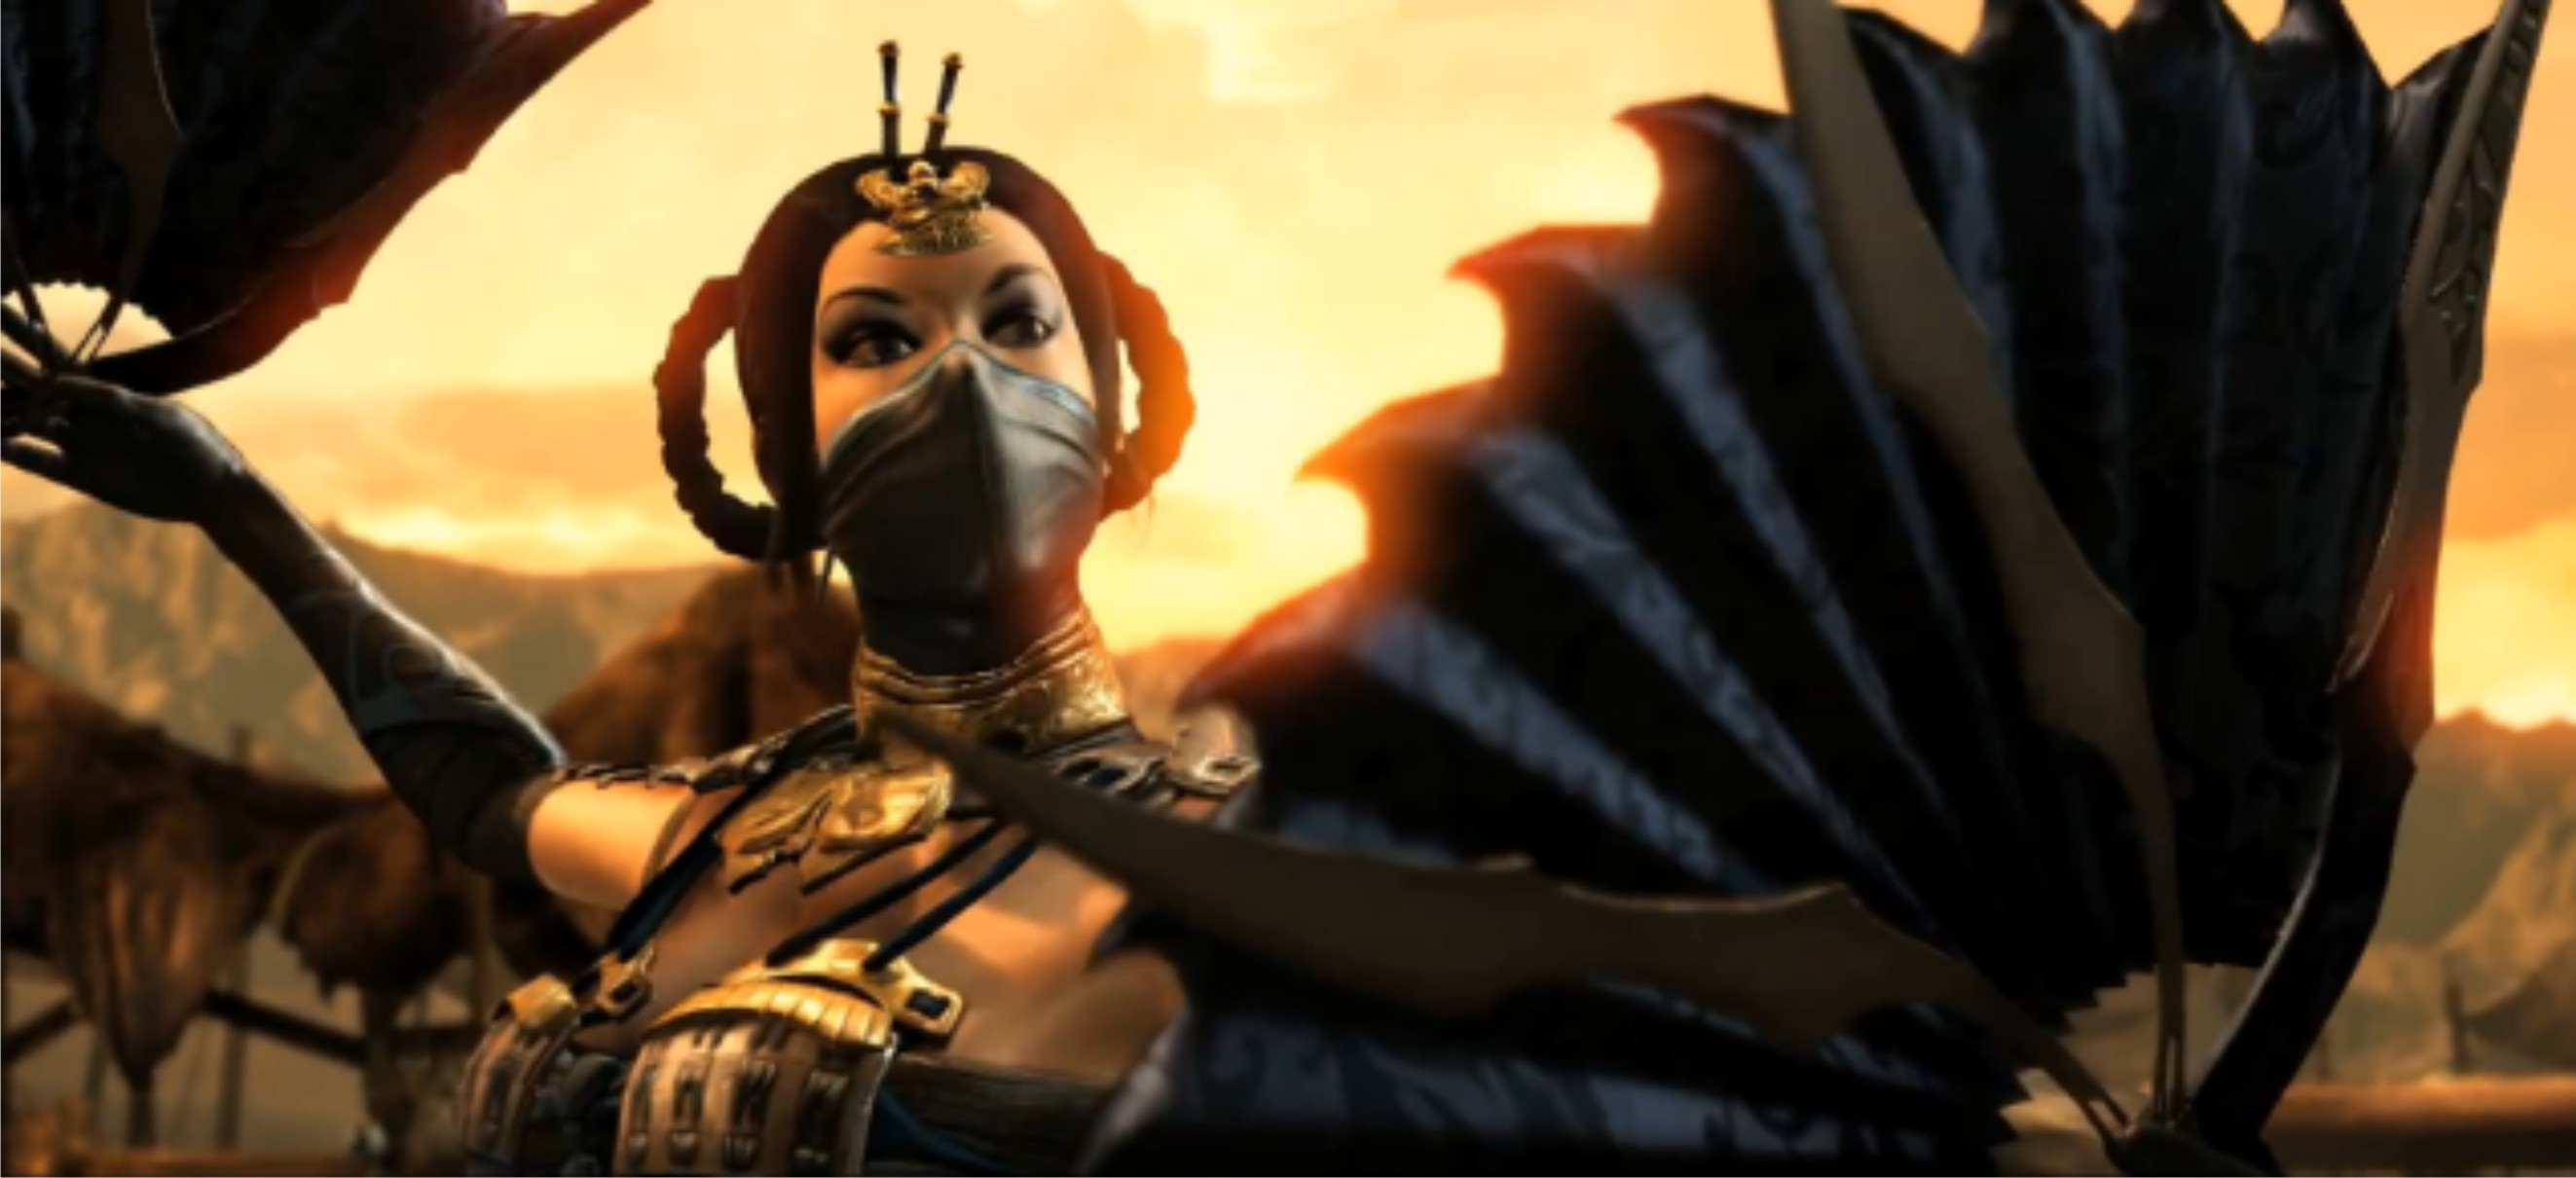 The Mortal Kombat X Who's Next? Gameplay Trailer is here